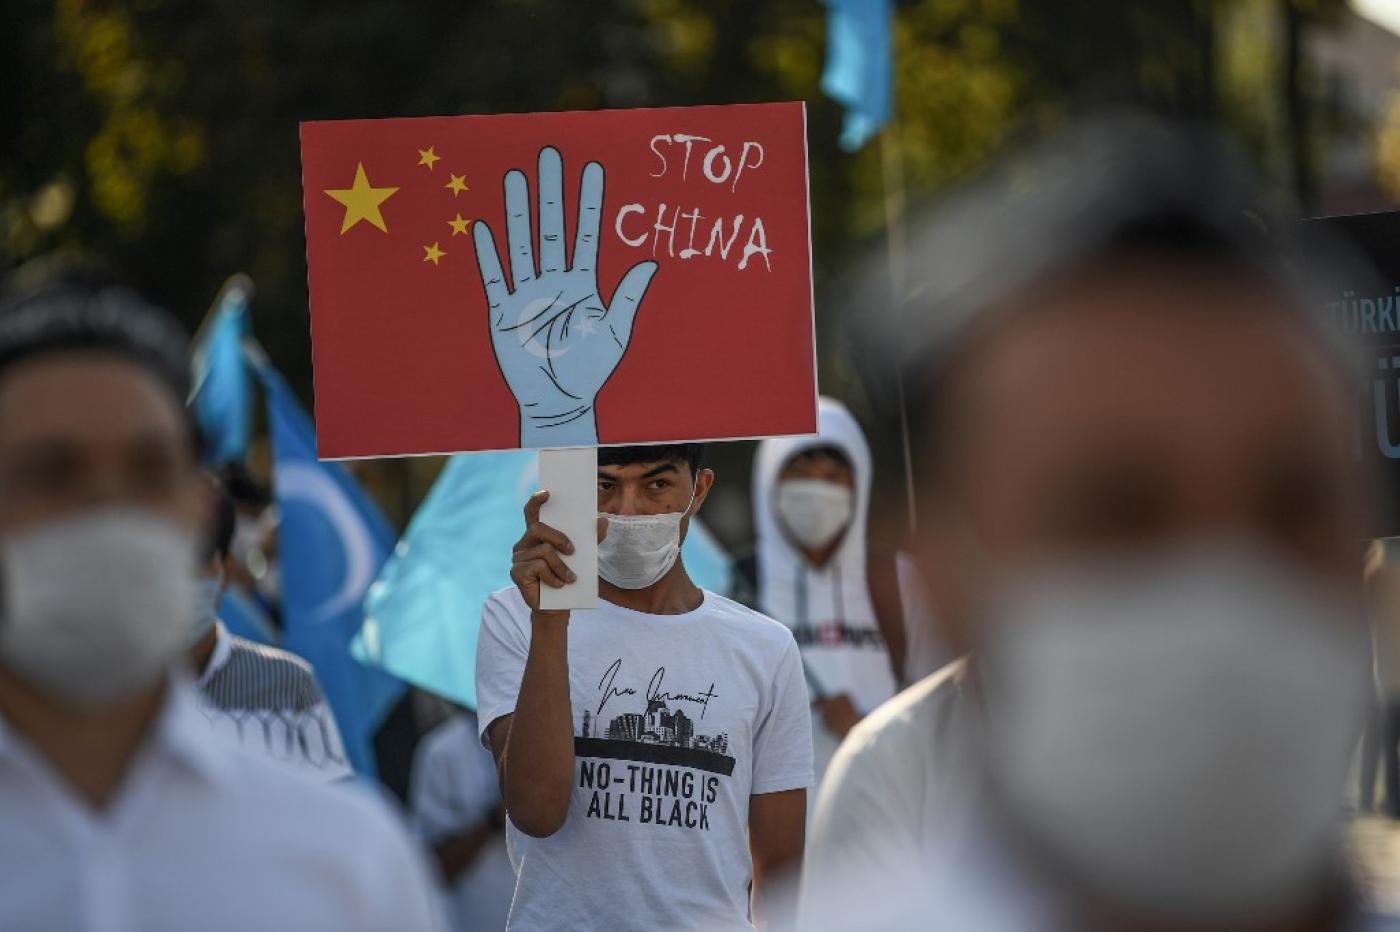 Despite protests from Uighurs outside of China, many Muslim-majority countries have remained silent on China's rights violations